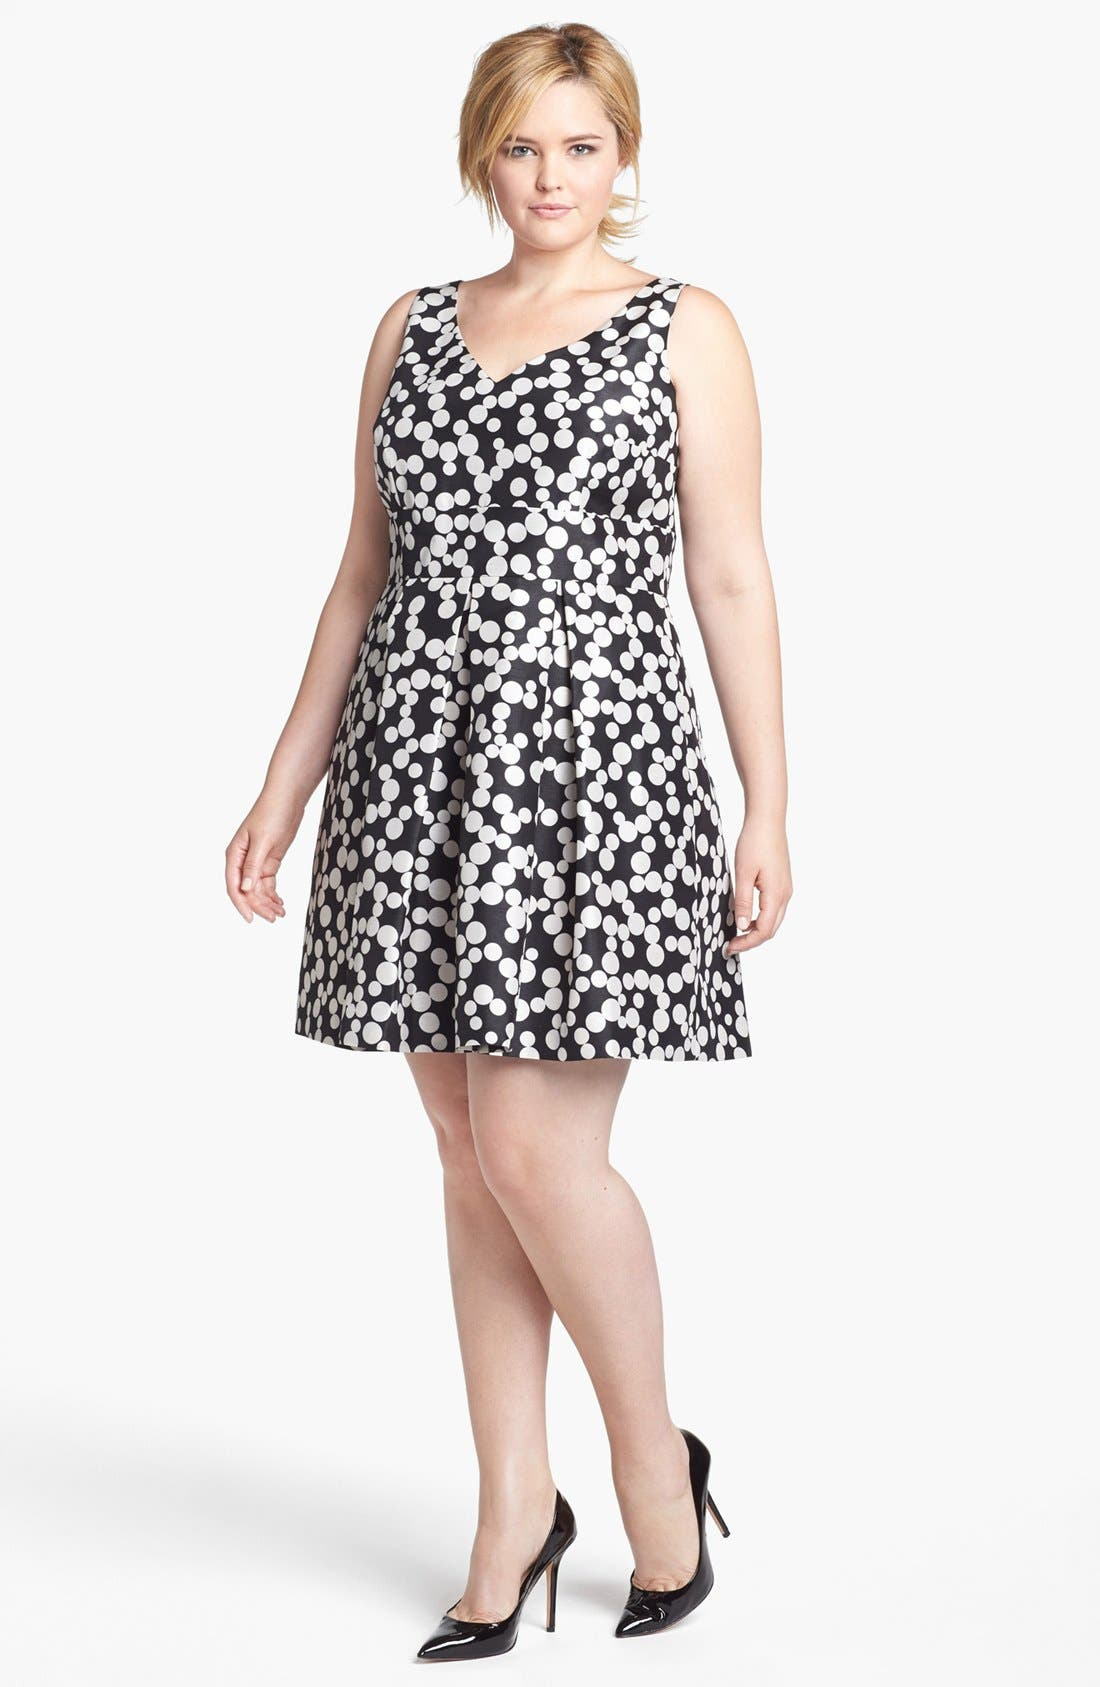 Alternate Image 1 Selected - Taylor Dresses Polka Dot Fit & Flare Dress (Plus Size)